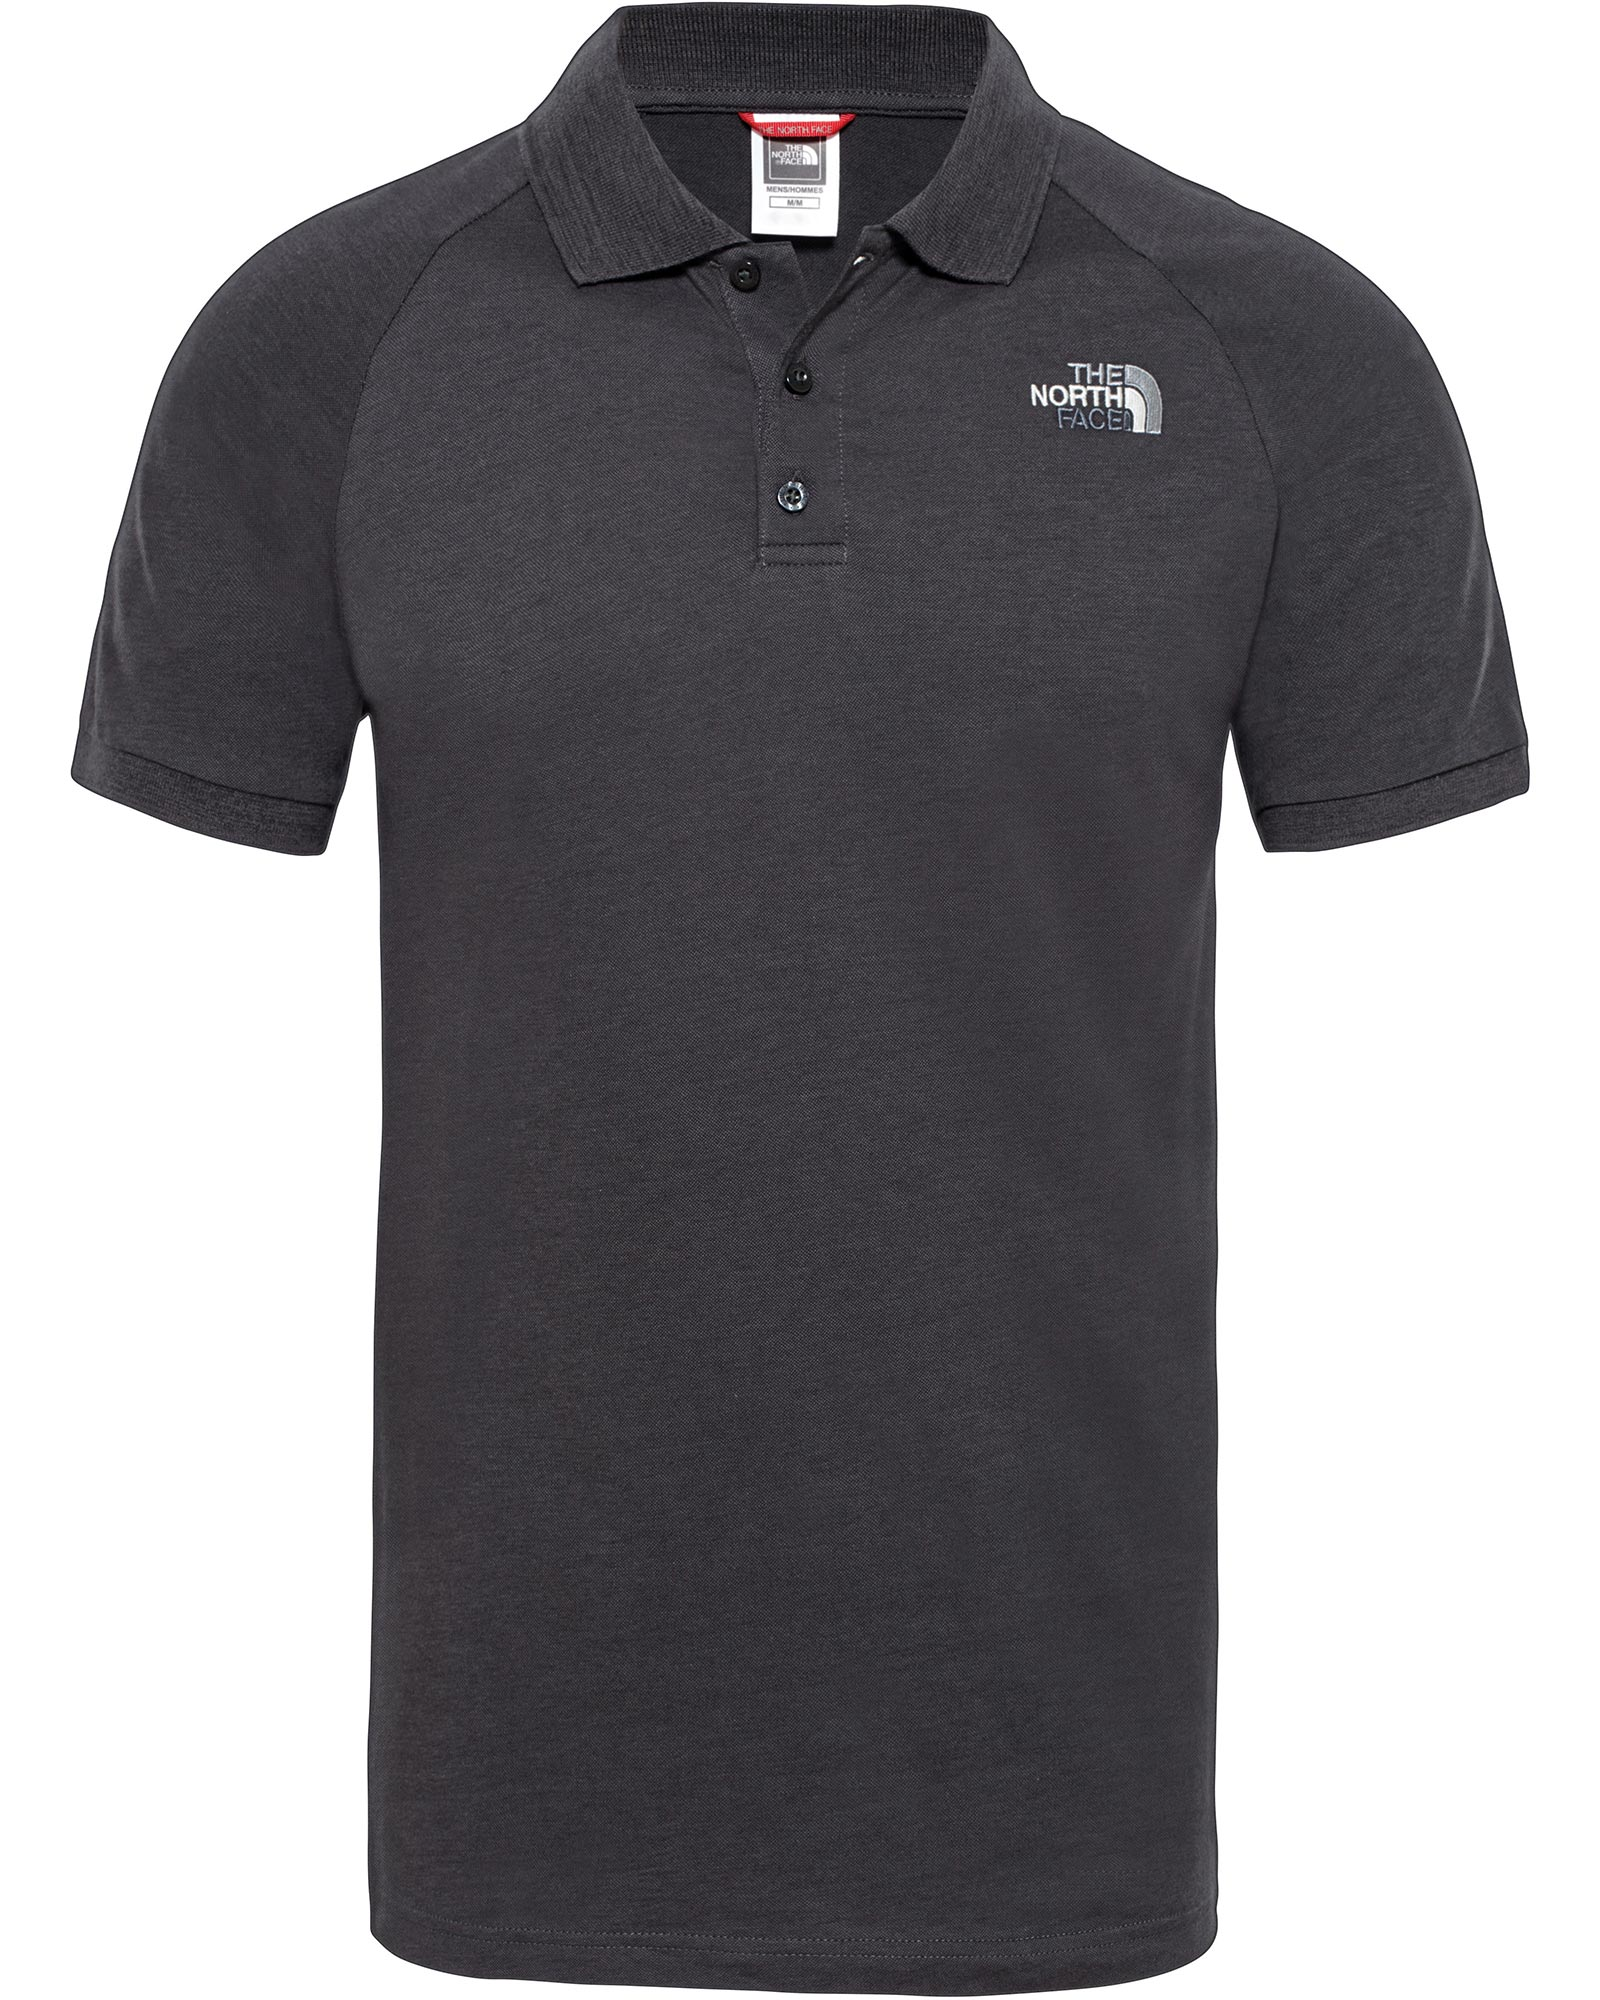 The North Face Men's Raglan Jersey Polo 0